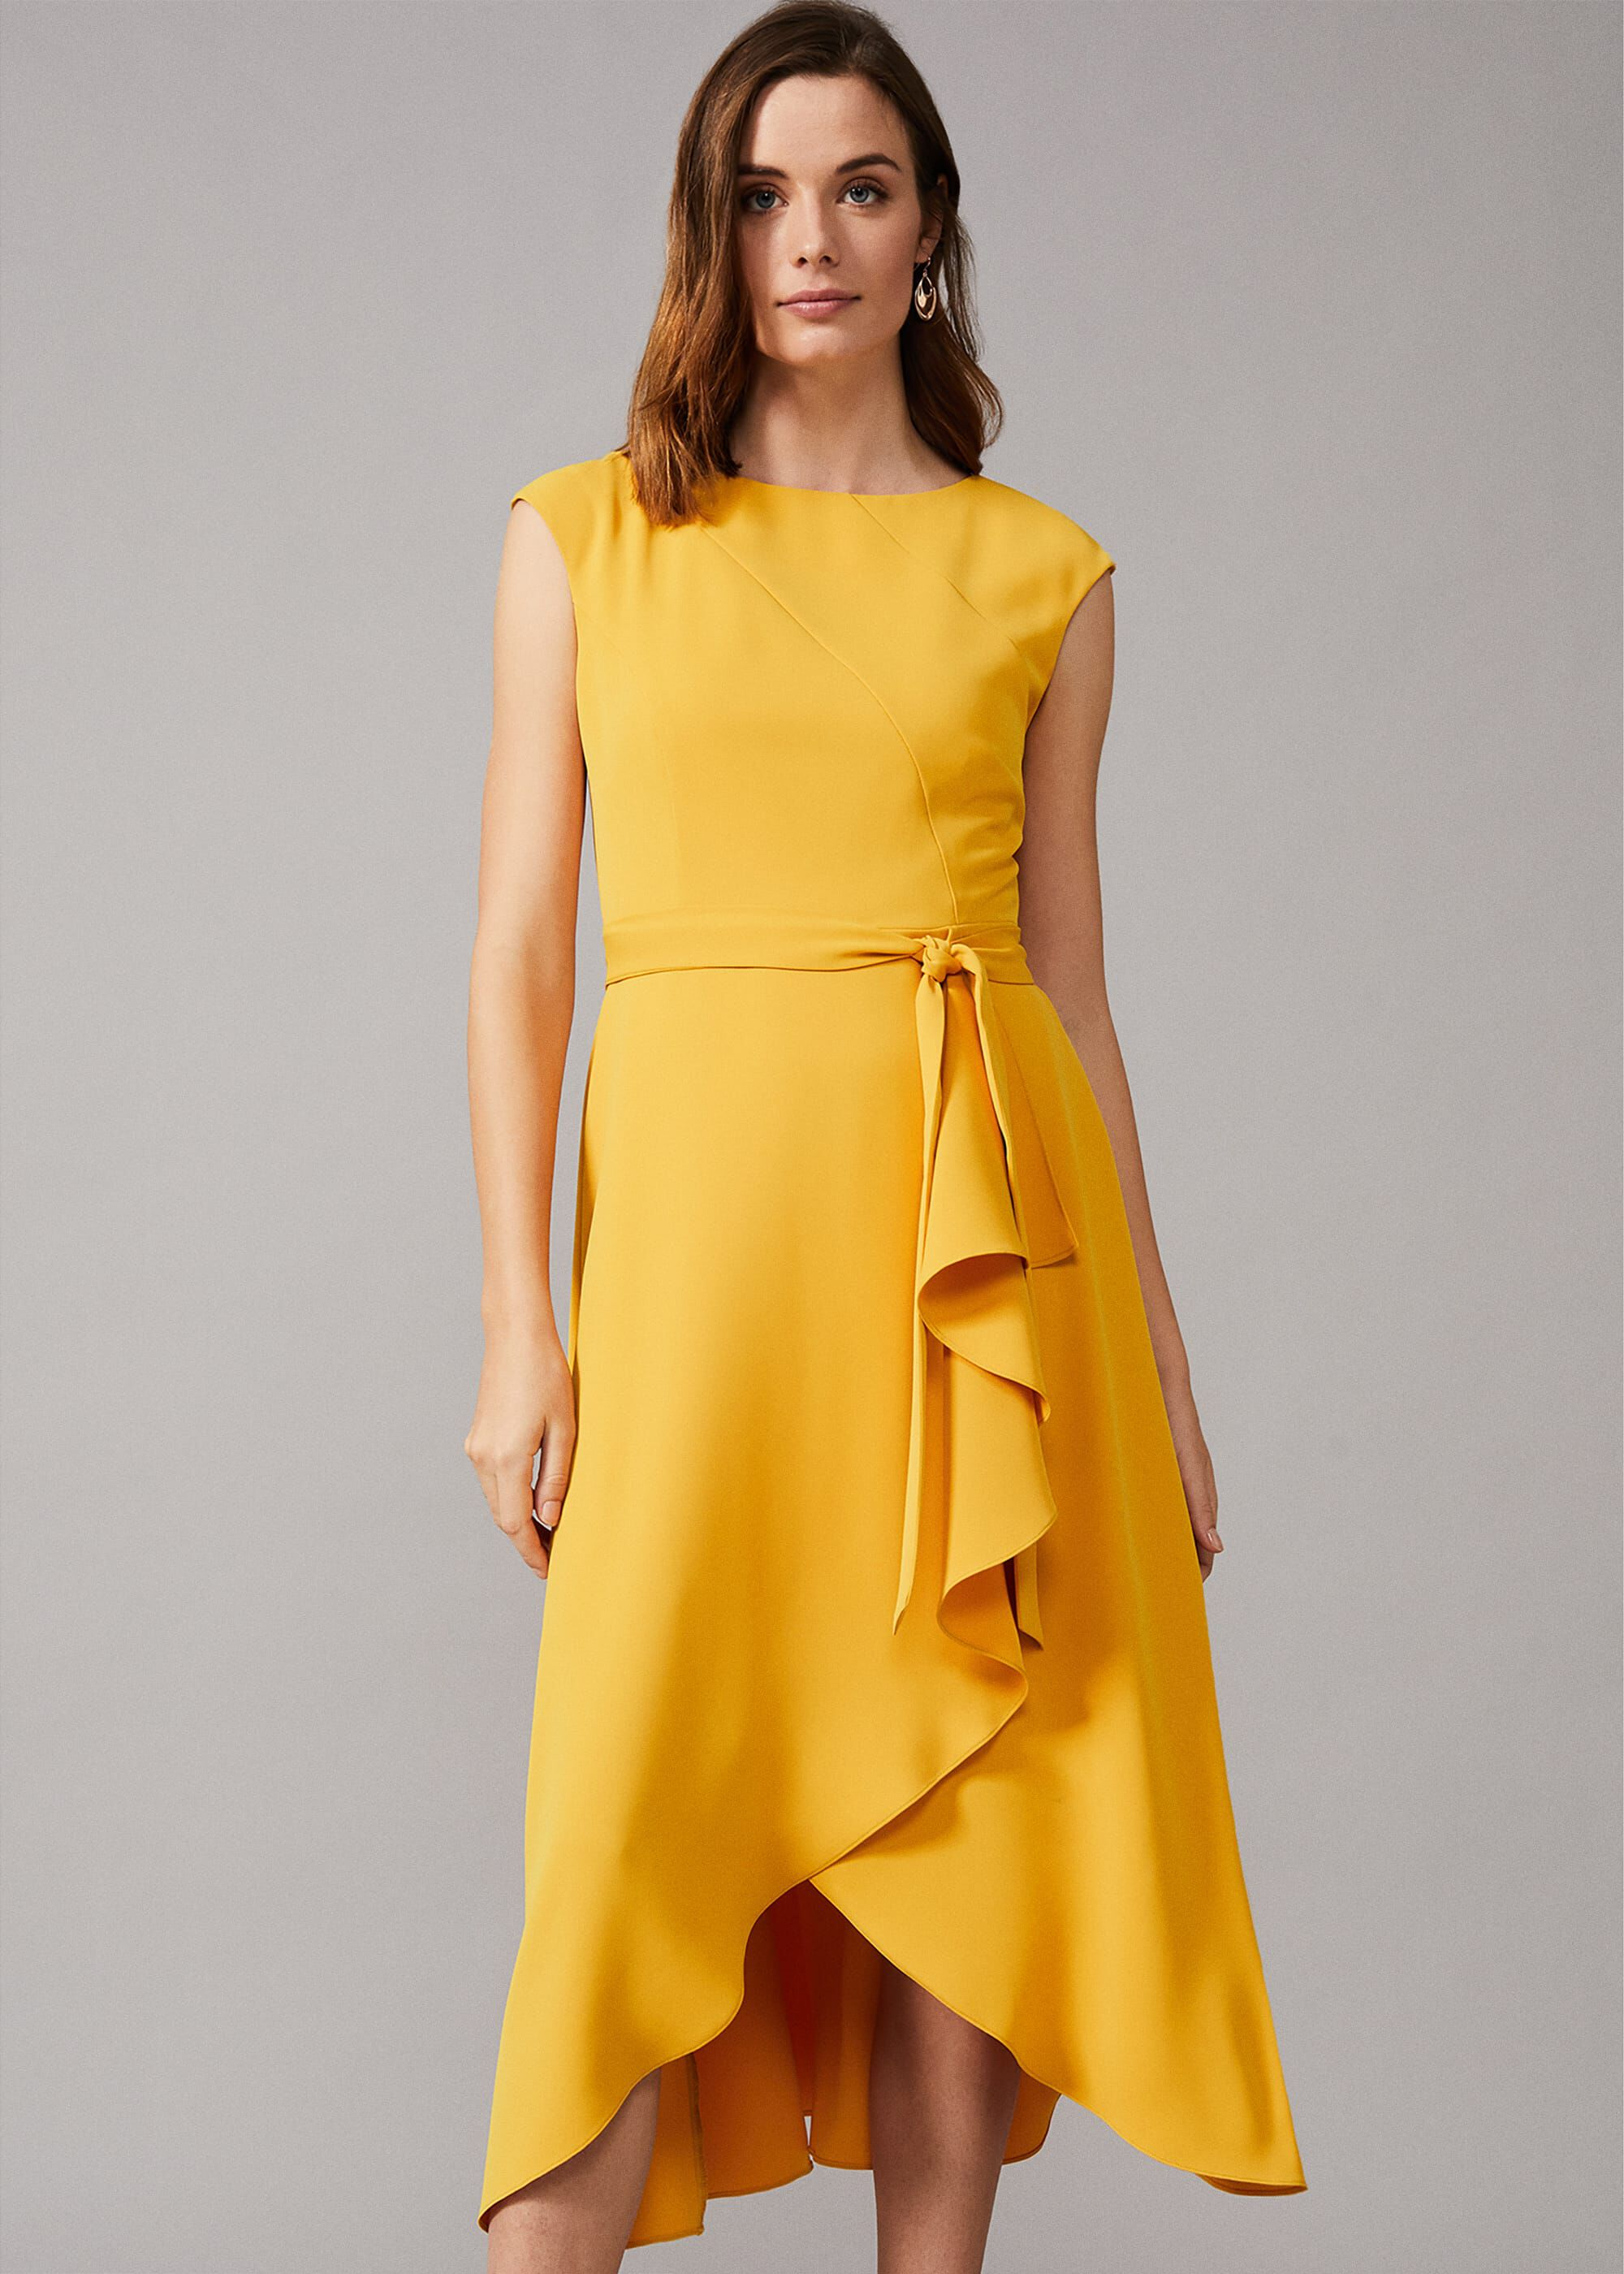 Phase Eight Rushelle Frill Midi Dress, Yellow, Fit & Flare, Occasion Dress